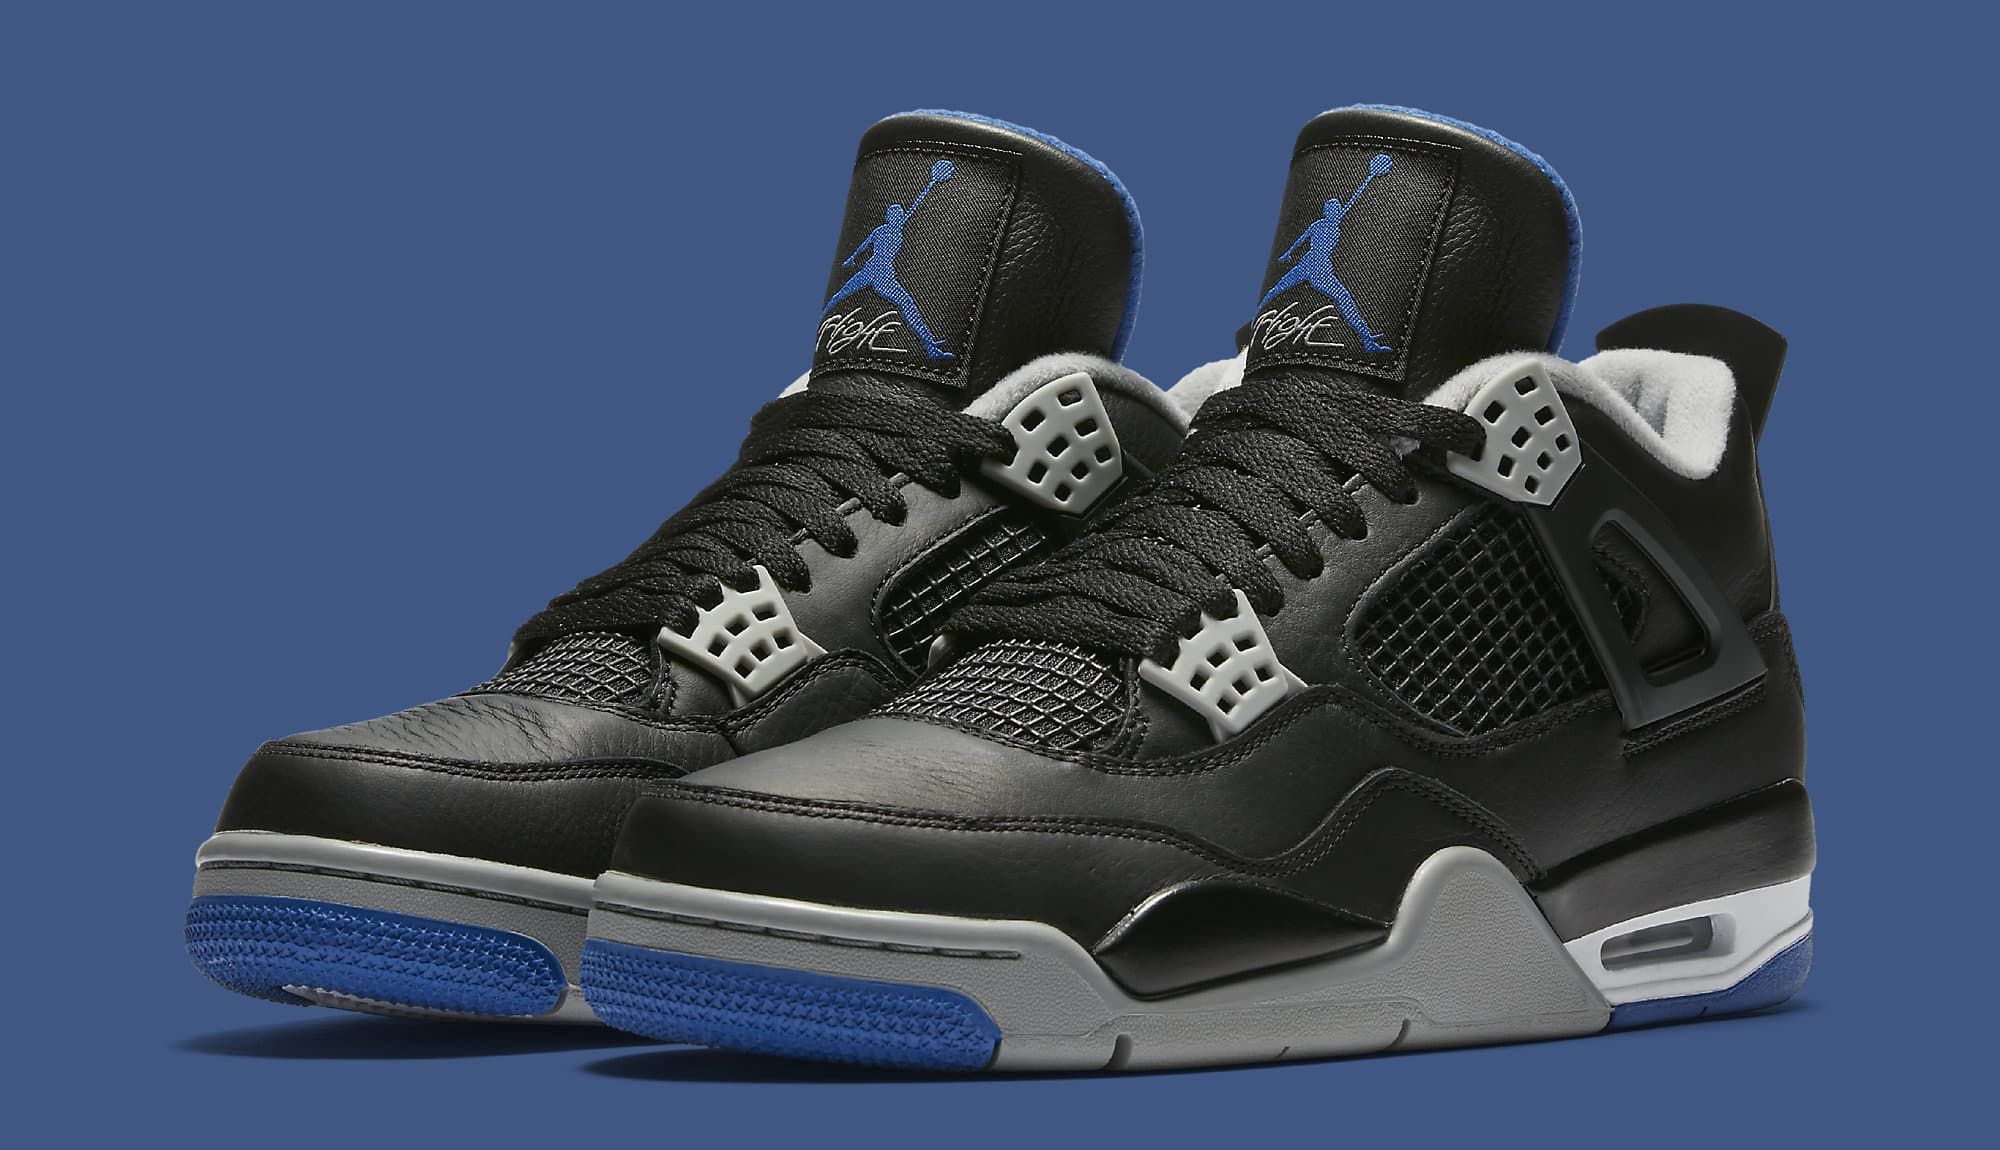 new lower prices order new cheap air jordan 4 black royal release date | Nike free shoes, Running ...